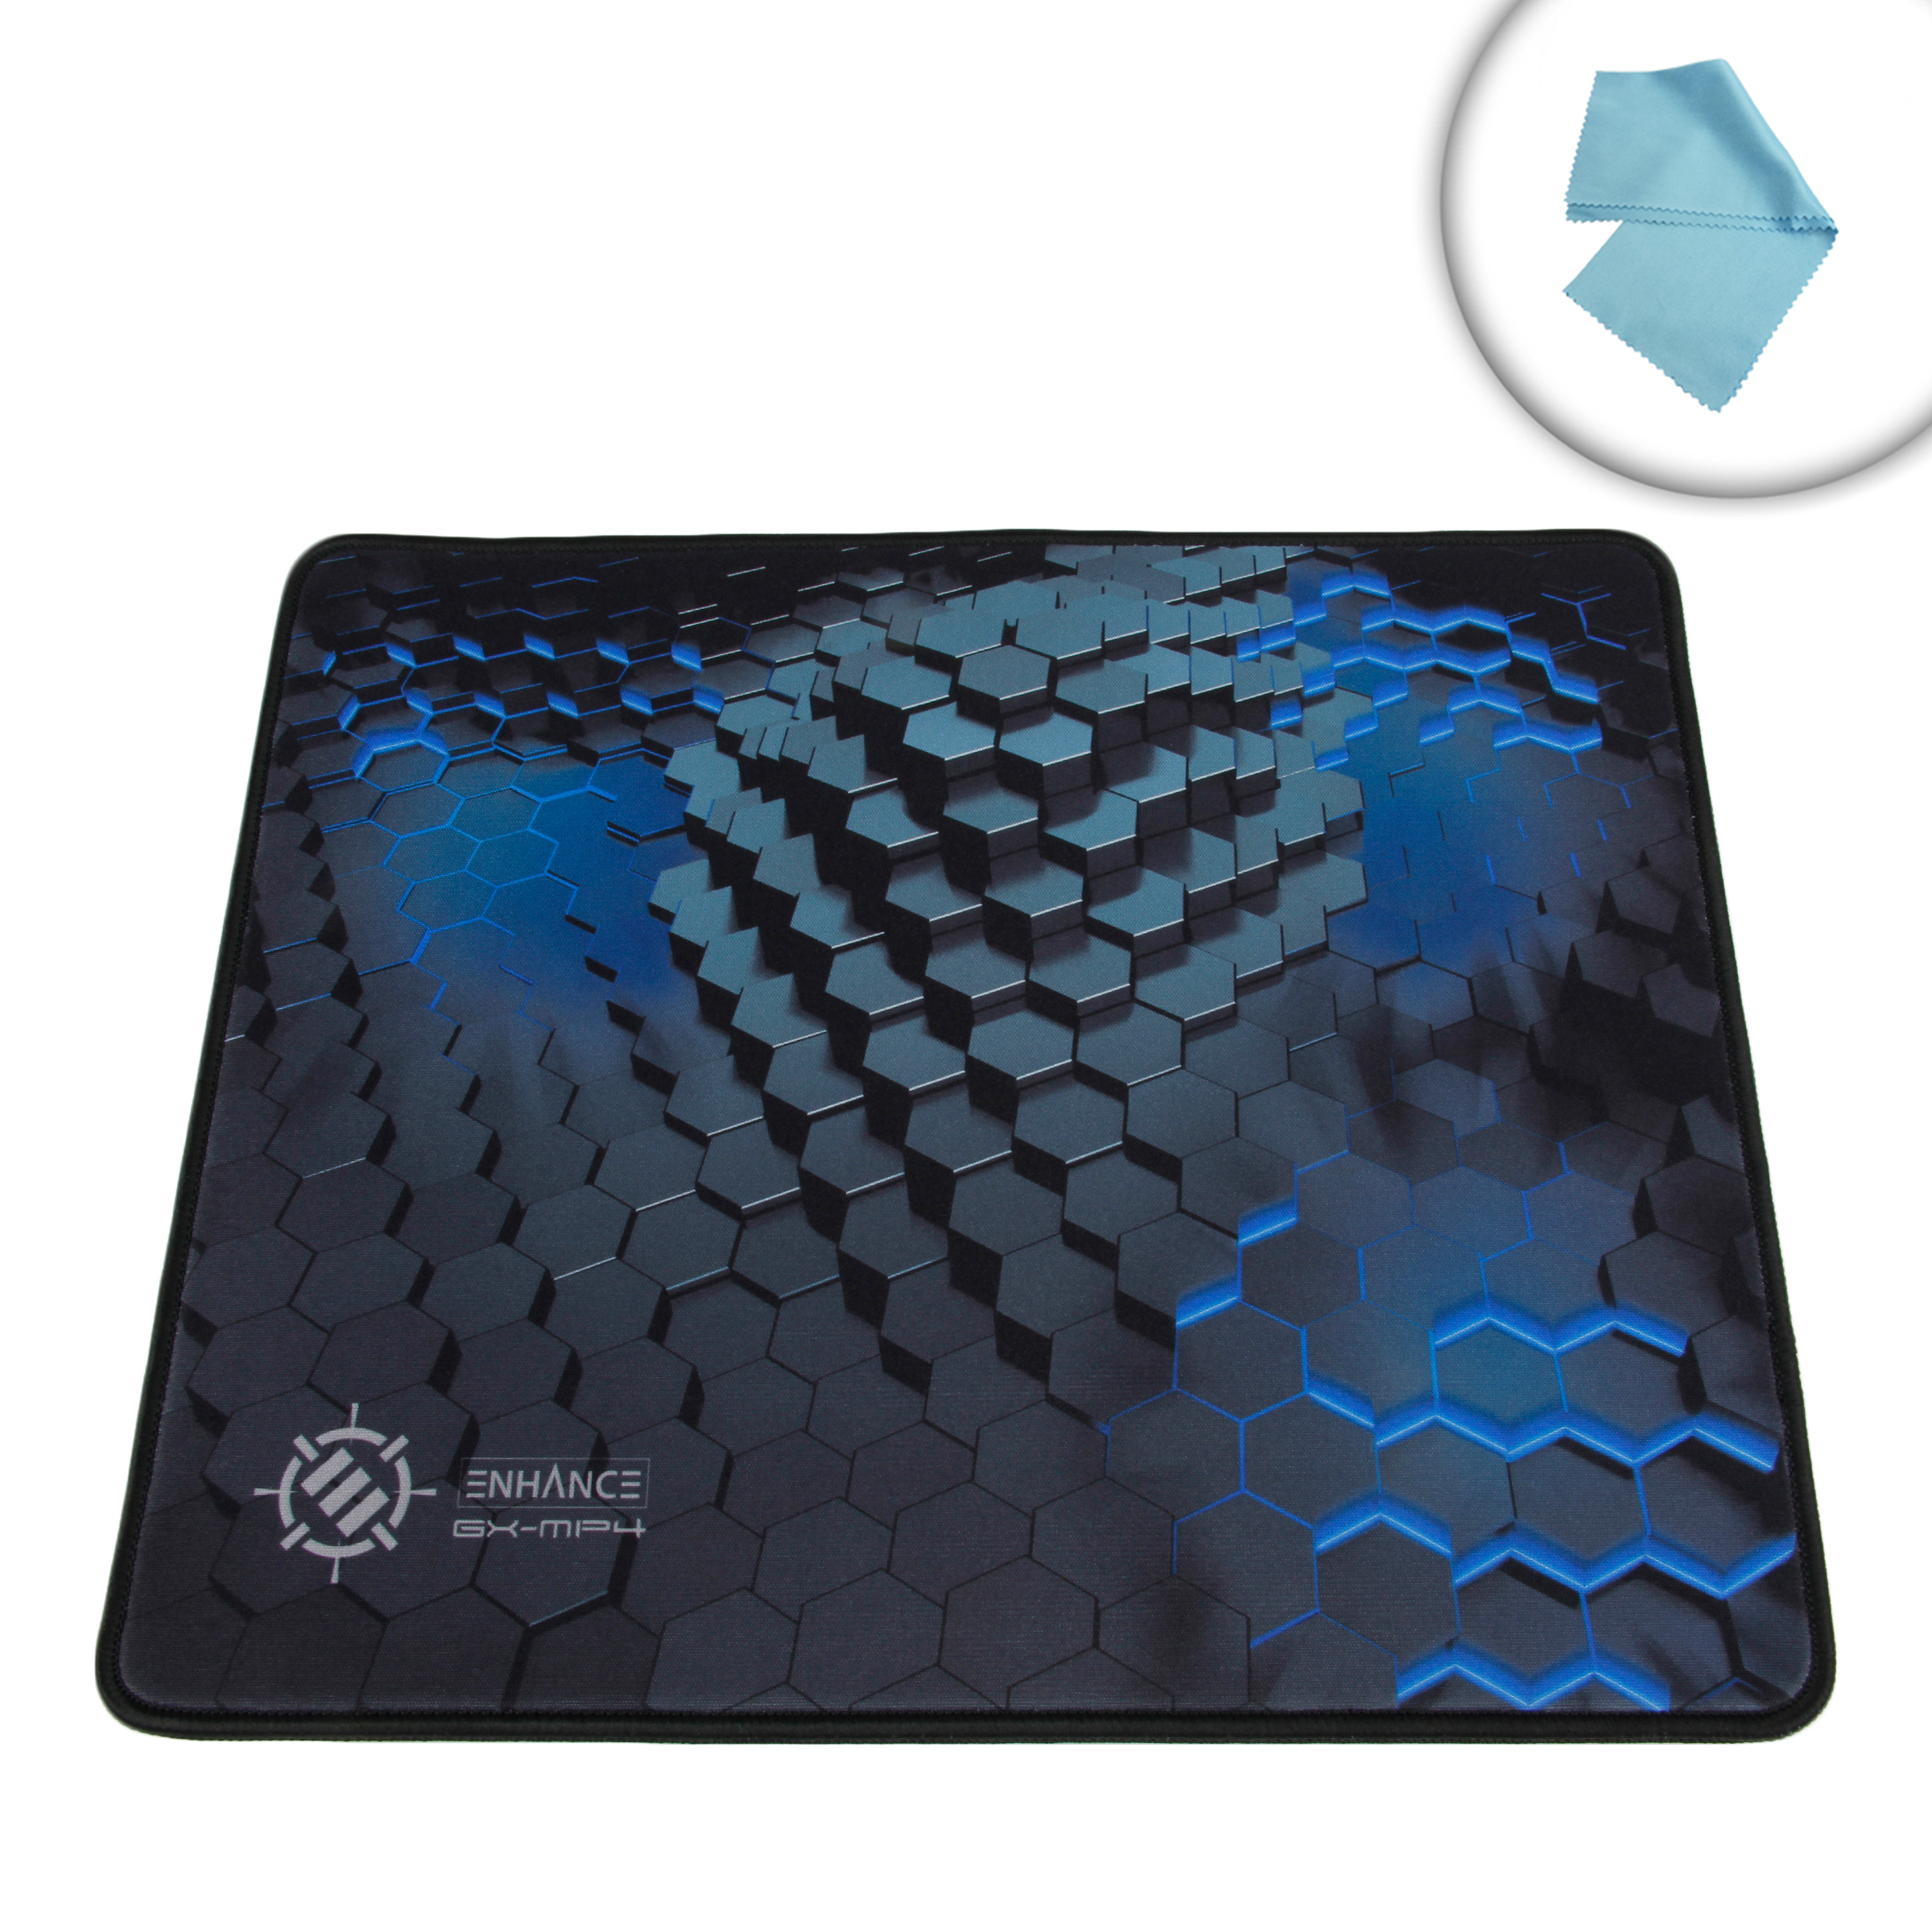 Mouse Pad With Premium Low Friction Tracking Surface Non Slip